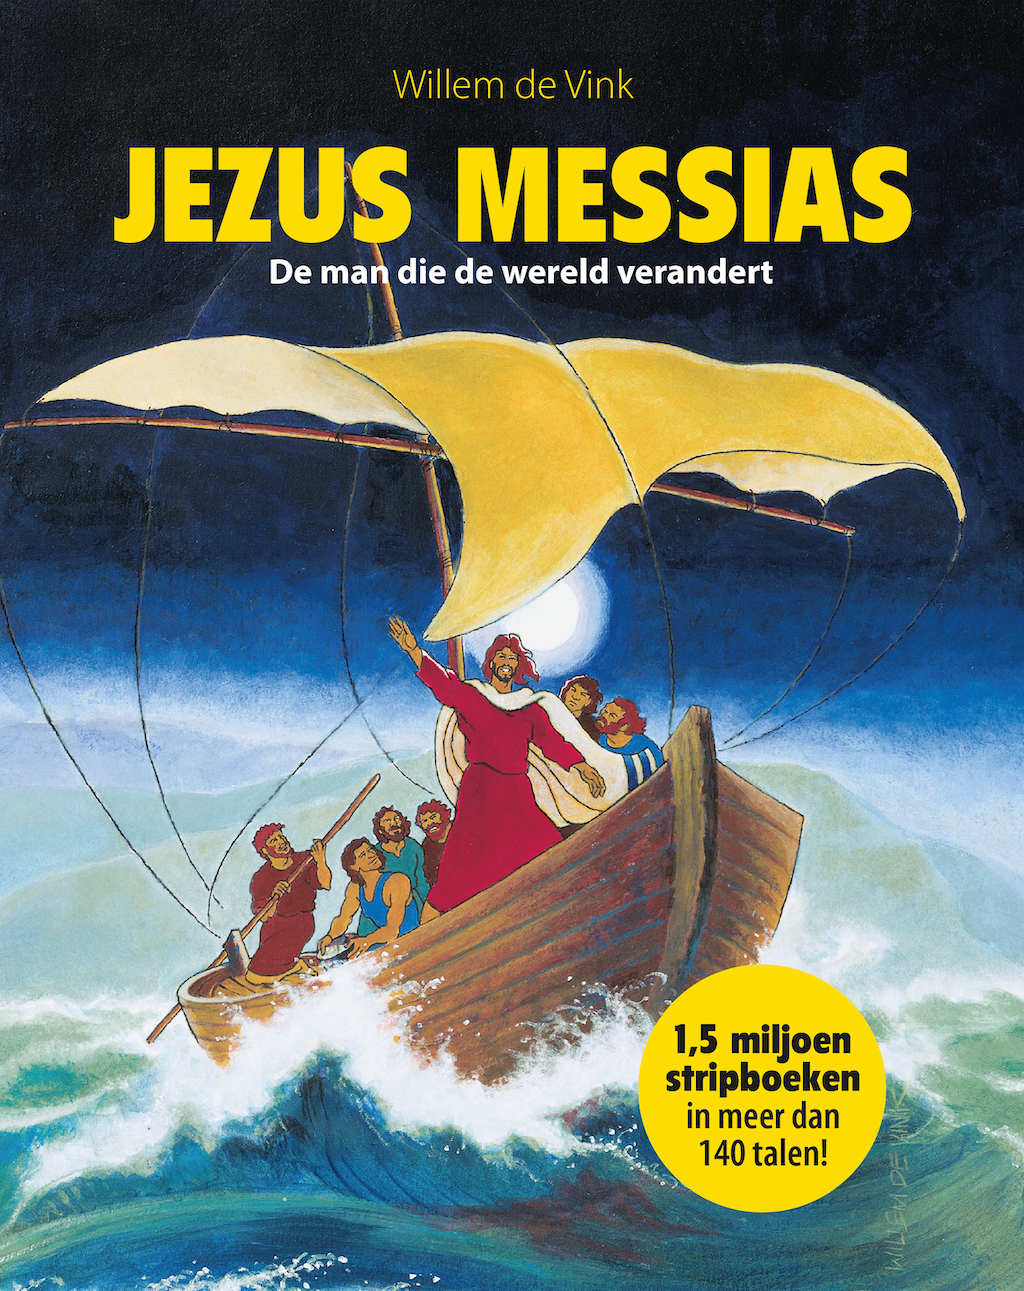 Stripboek Jezus Messias nu al in 140 talen | Uitdaging